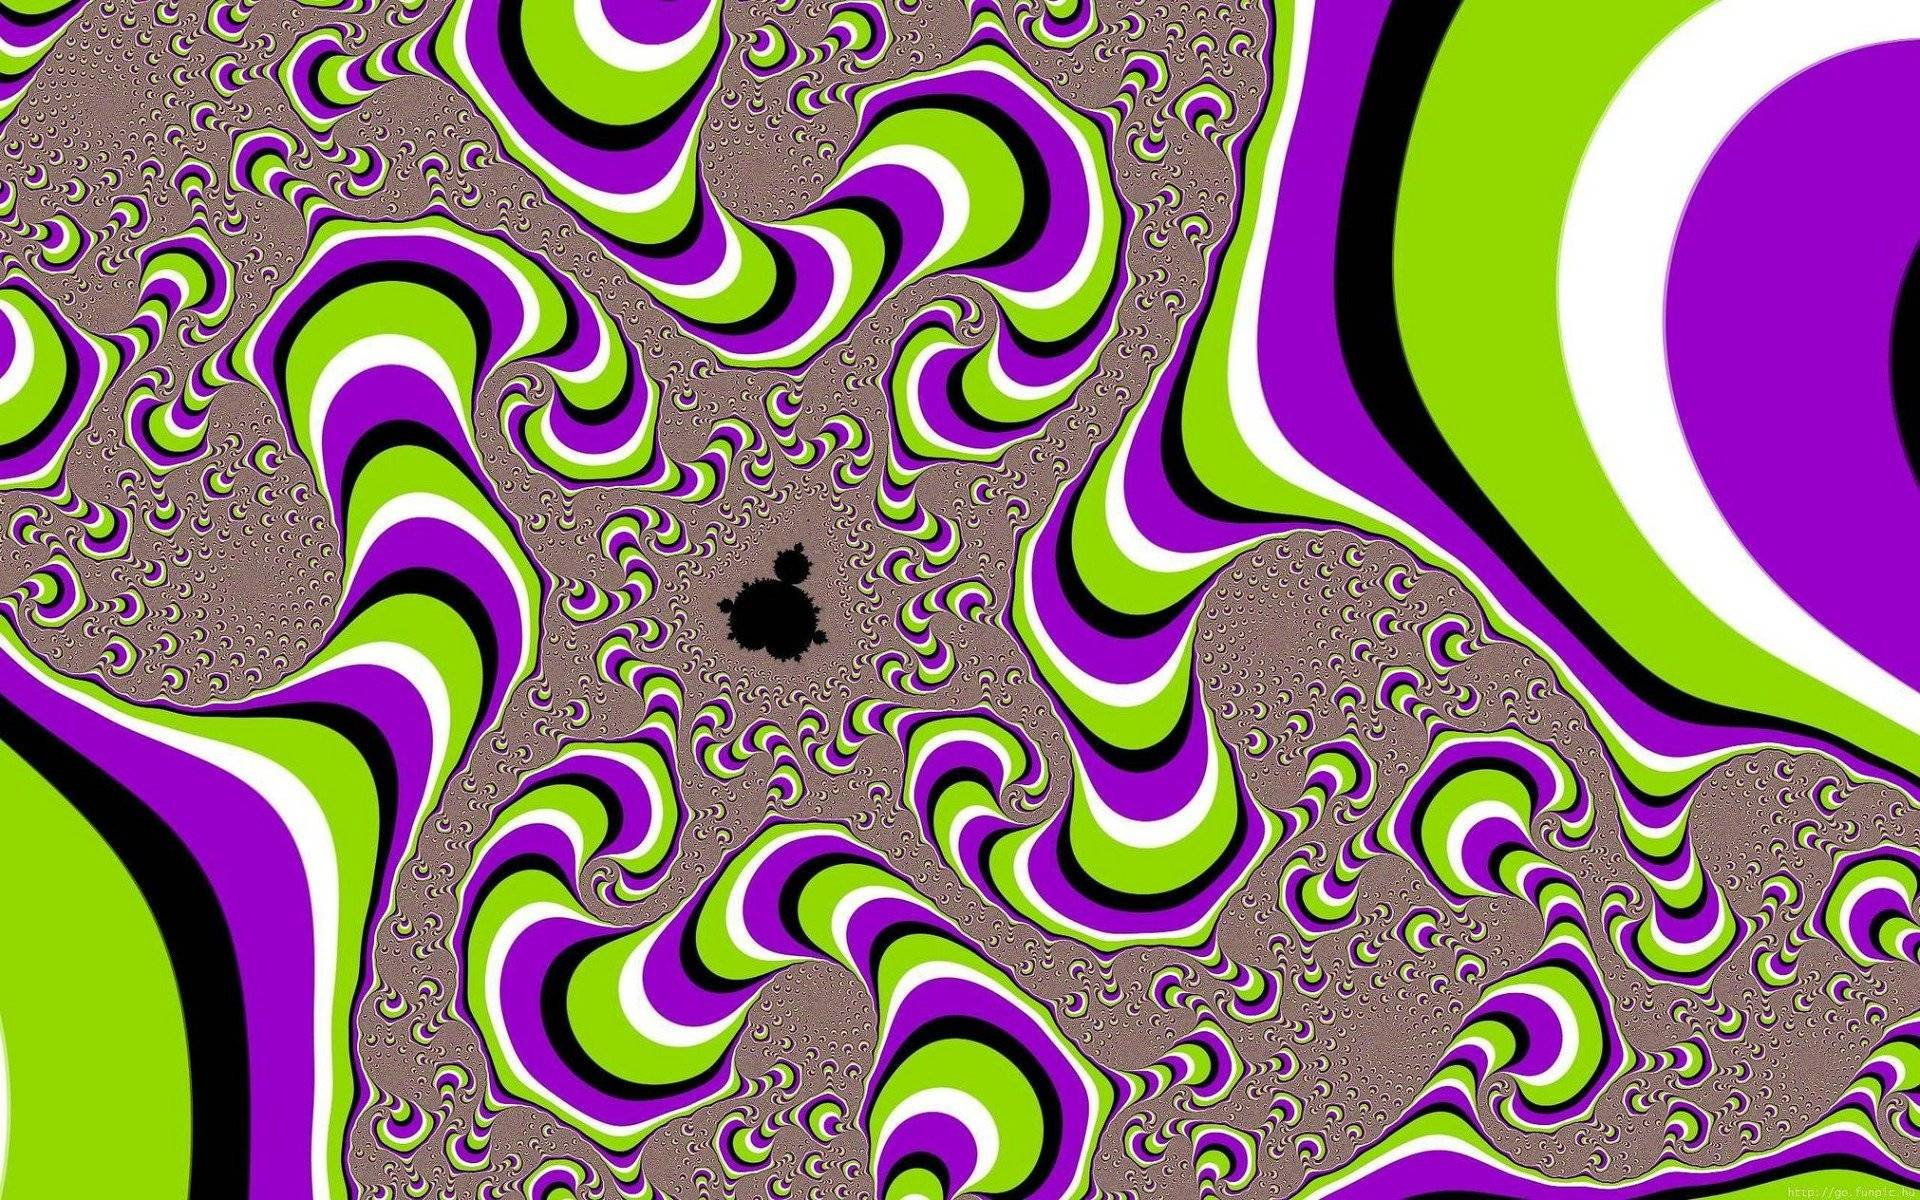 Trippy Acid Wallpaper Backgrounds Hd Pics Of Laptop On Gipsypixel